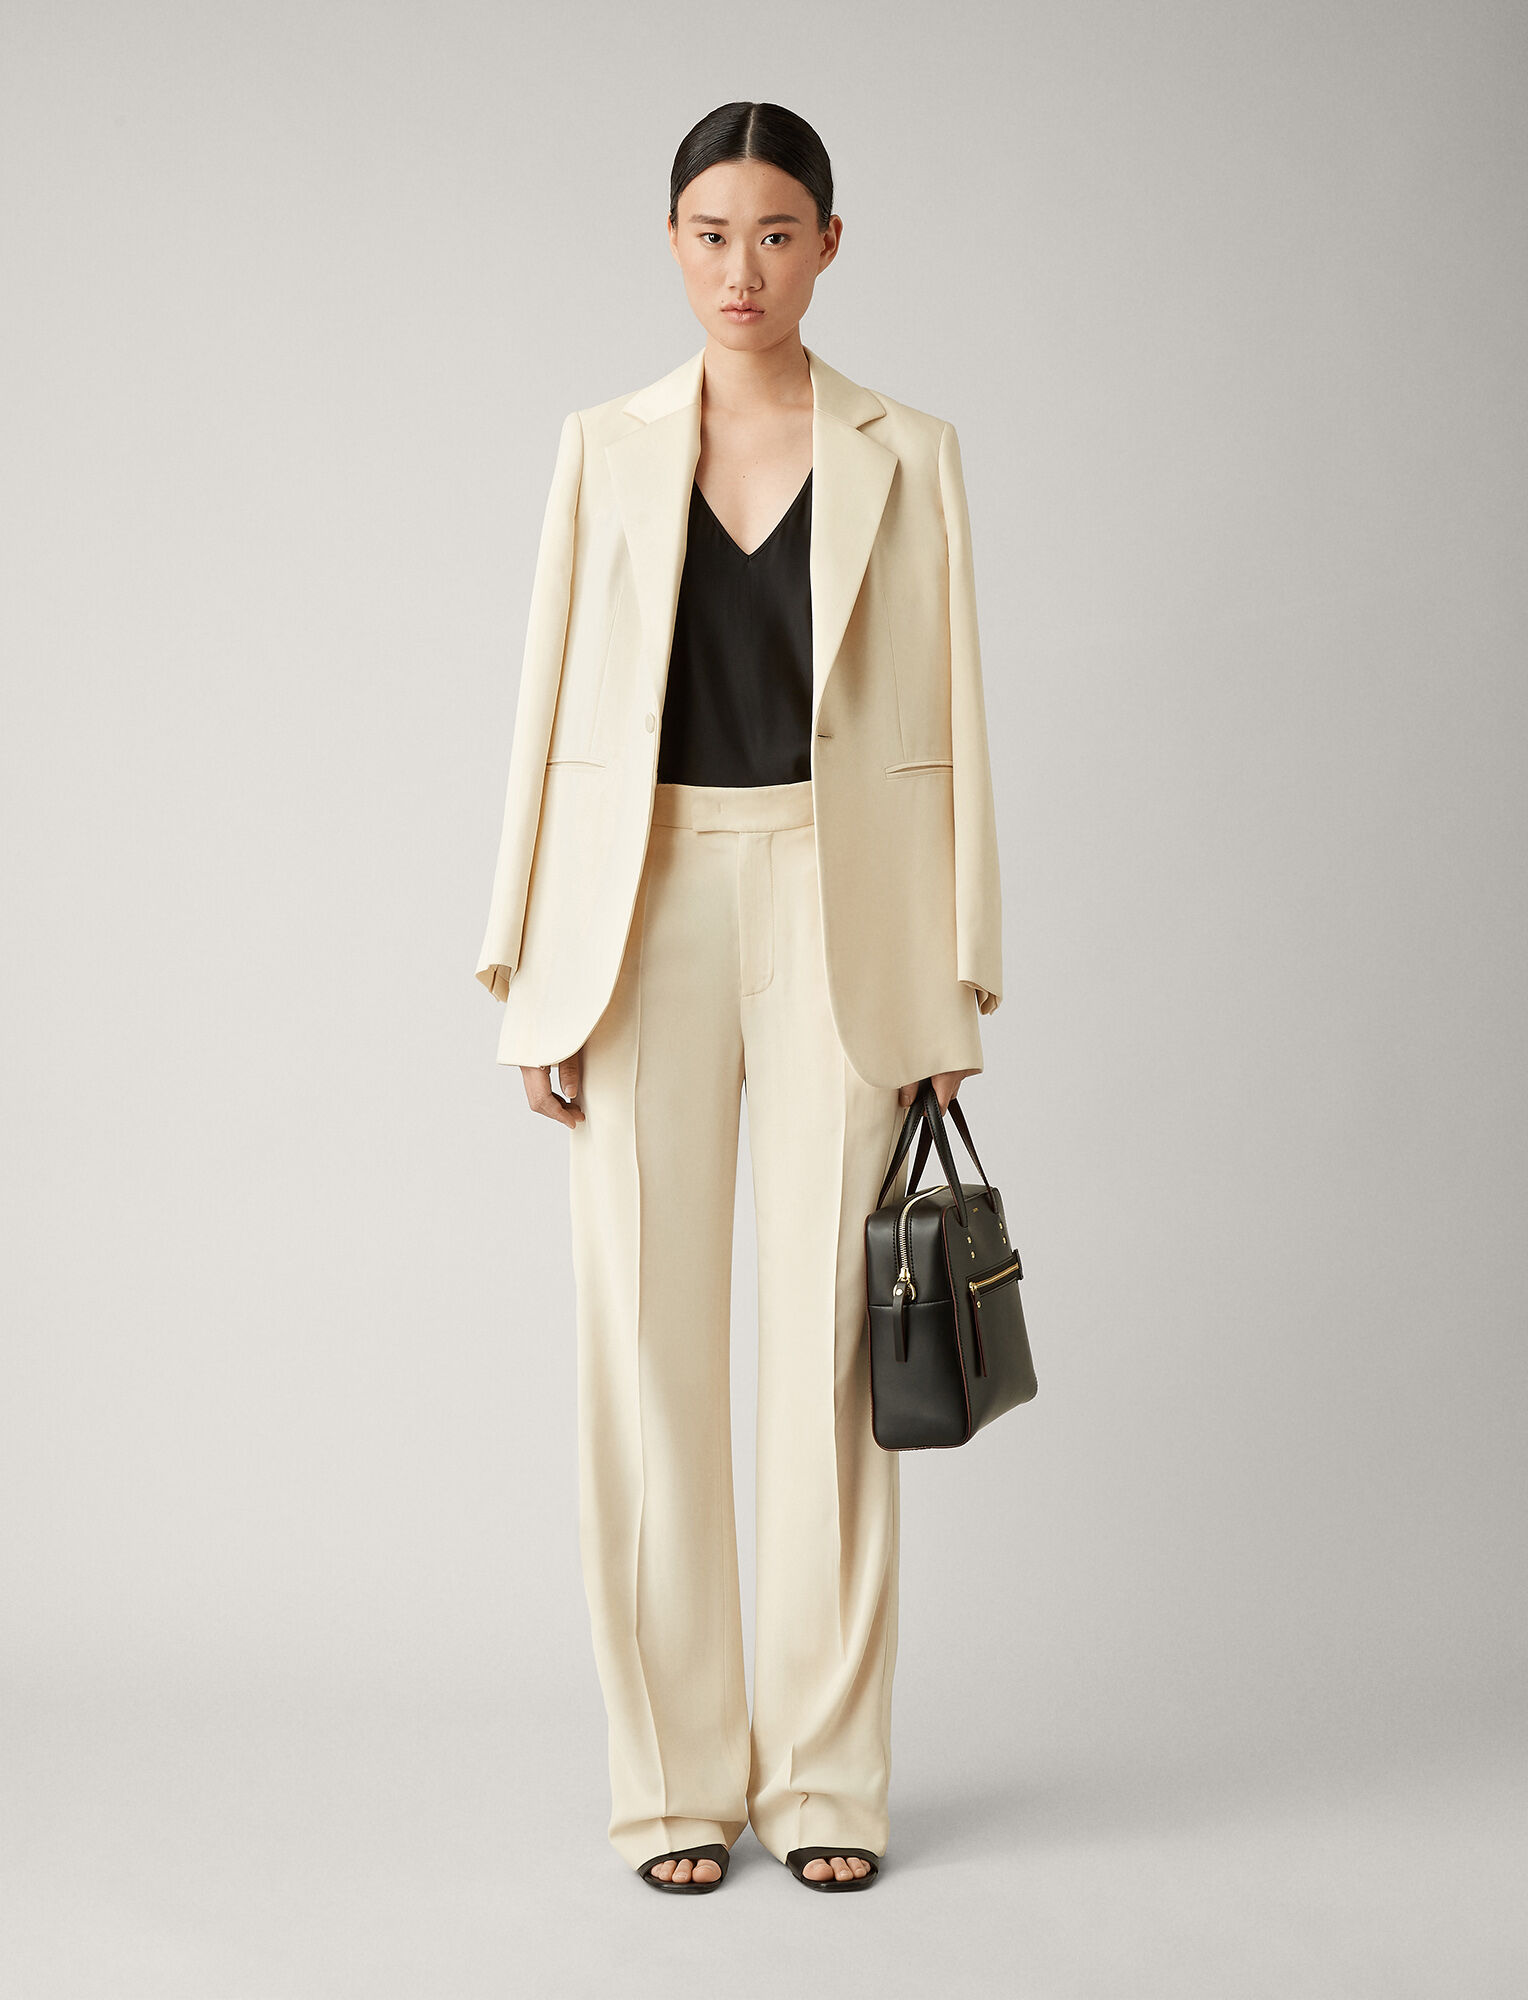 Joseph, Ferry Fluid Tuxedo Trousers, in SAND